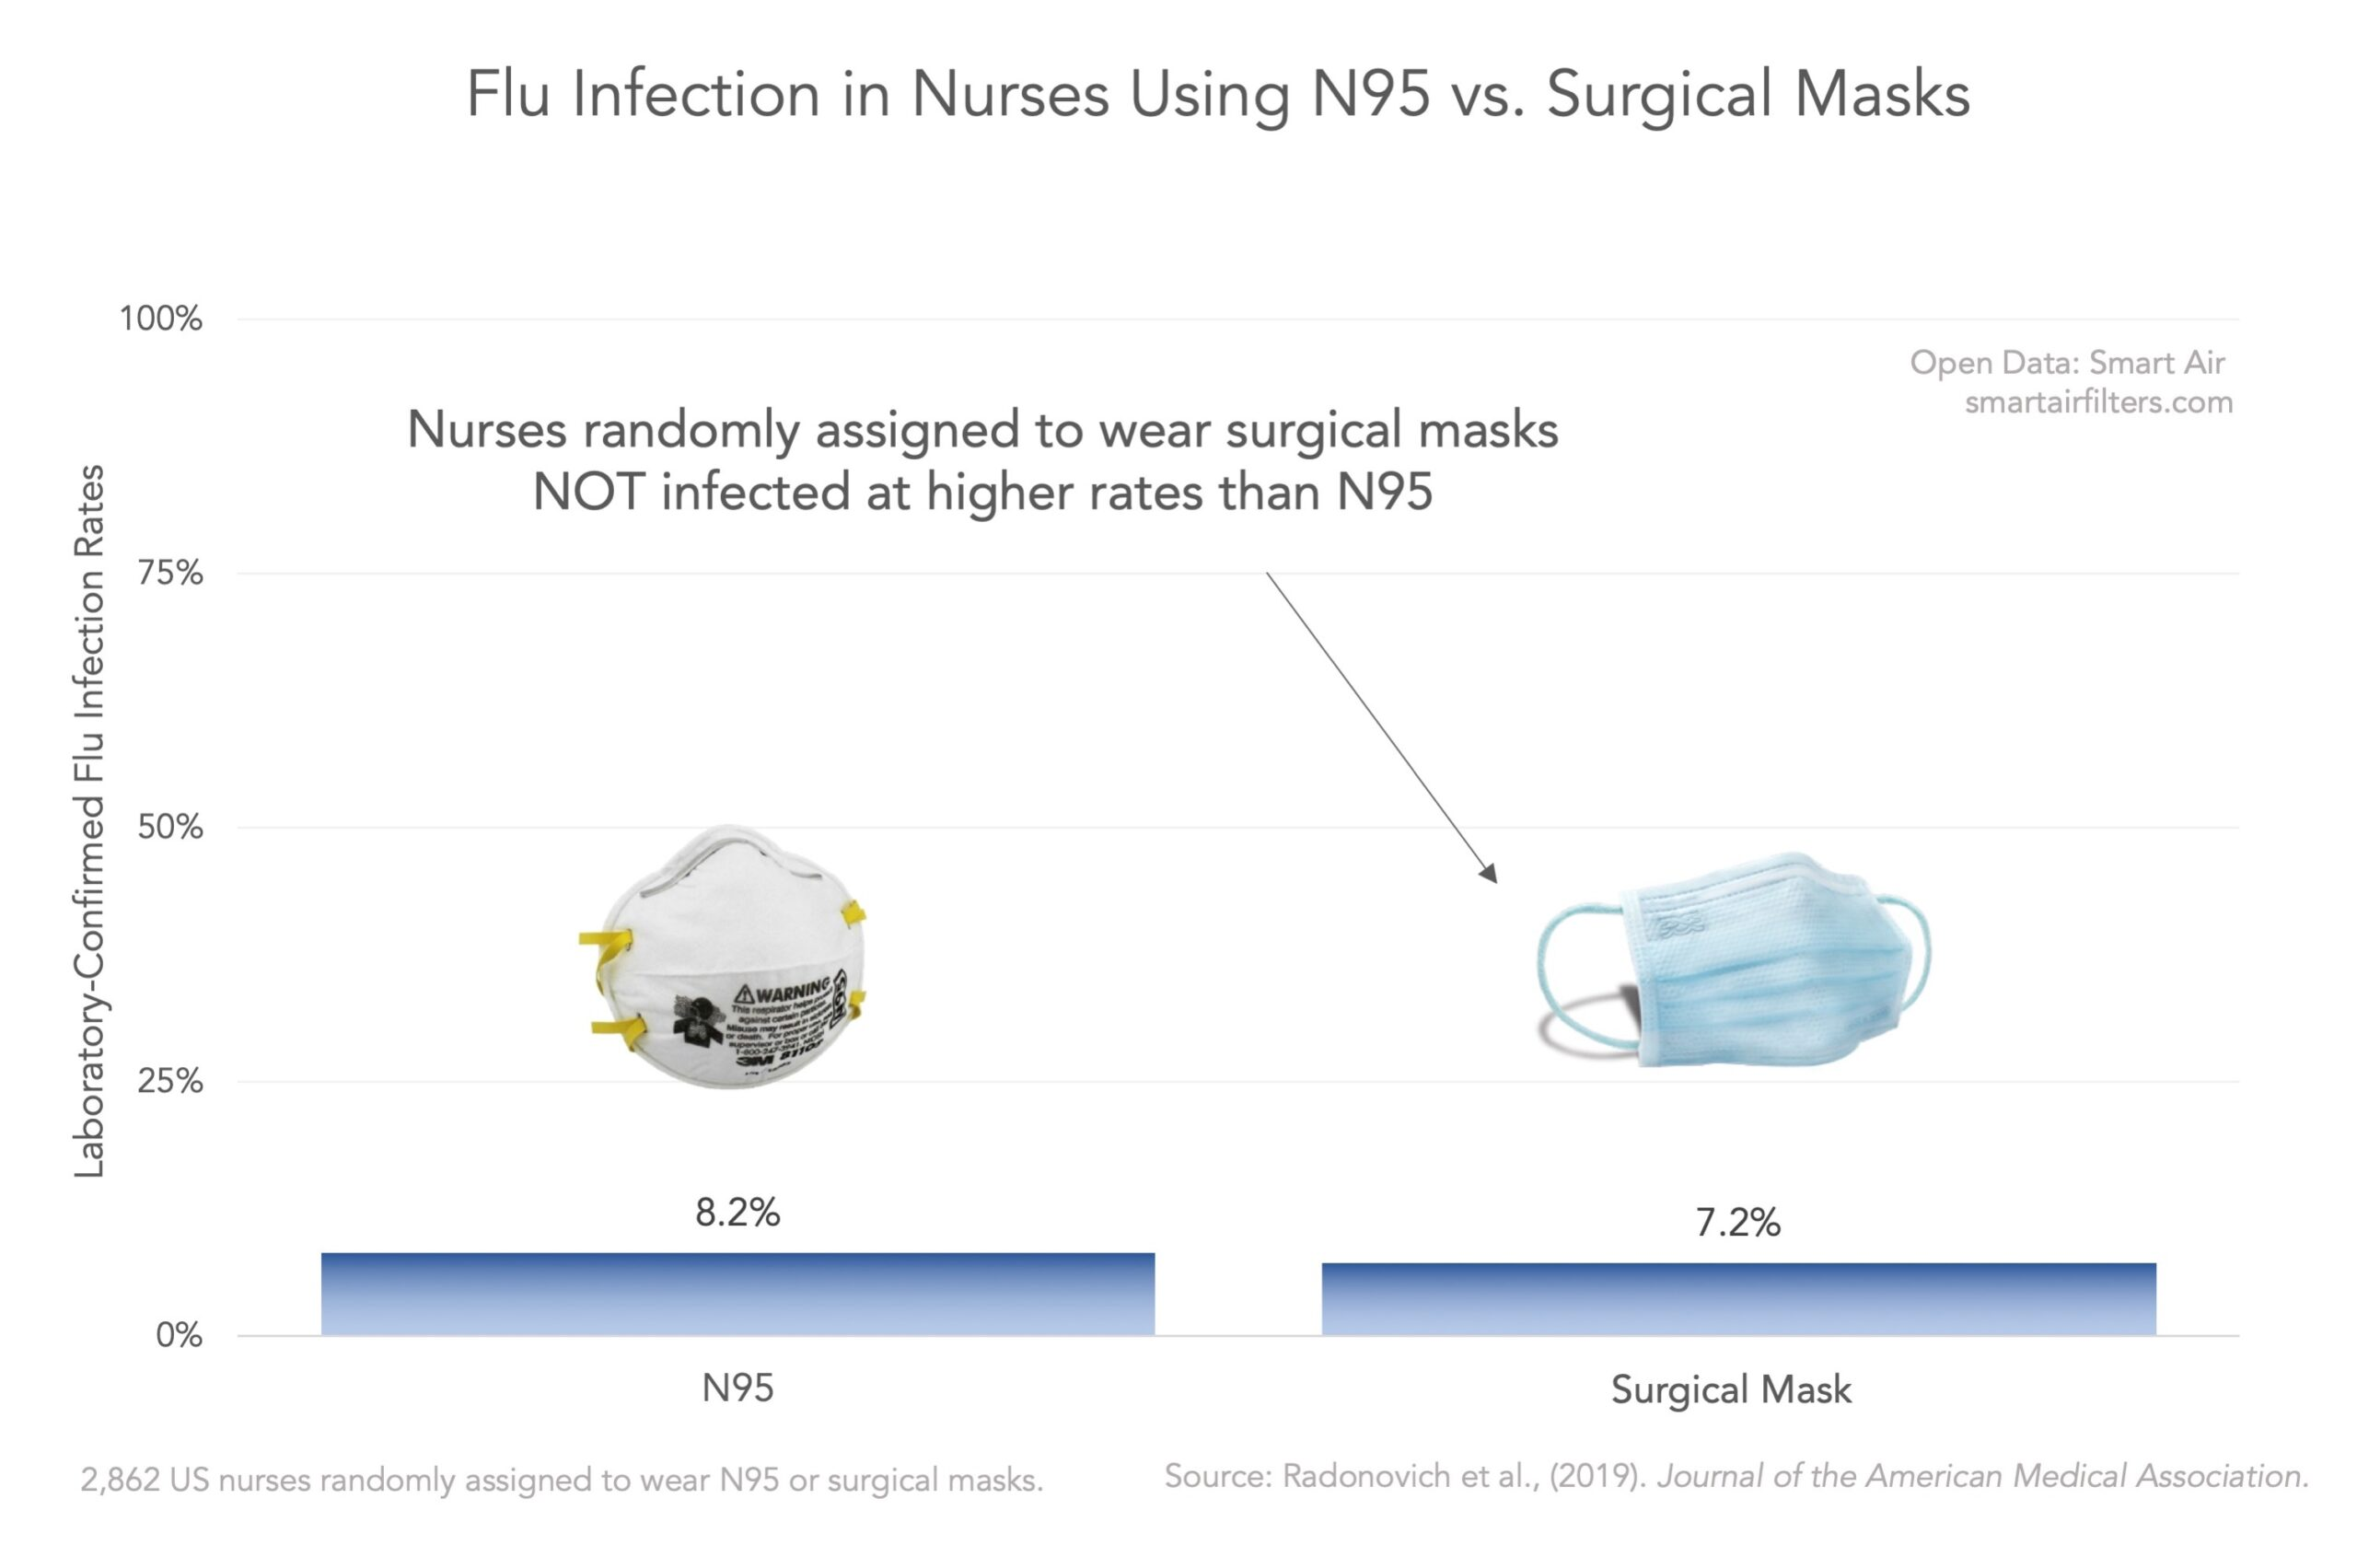 N95 vs surgical mask flu infection study